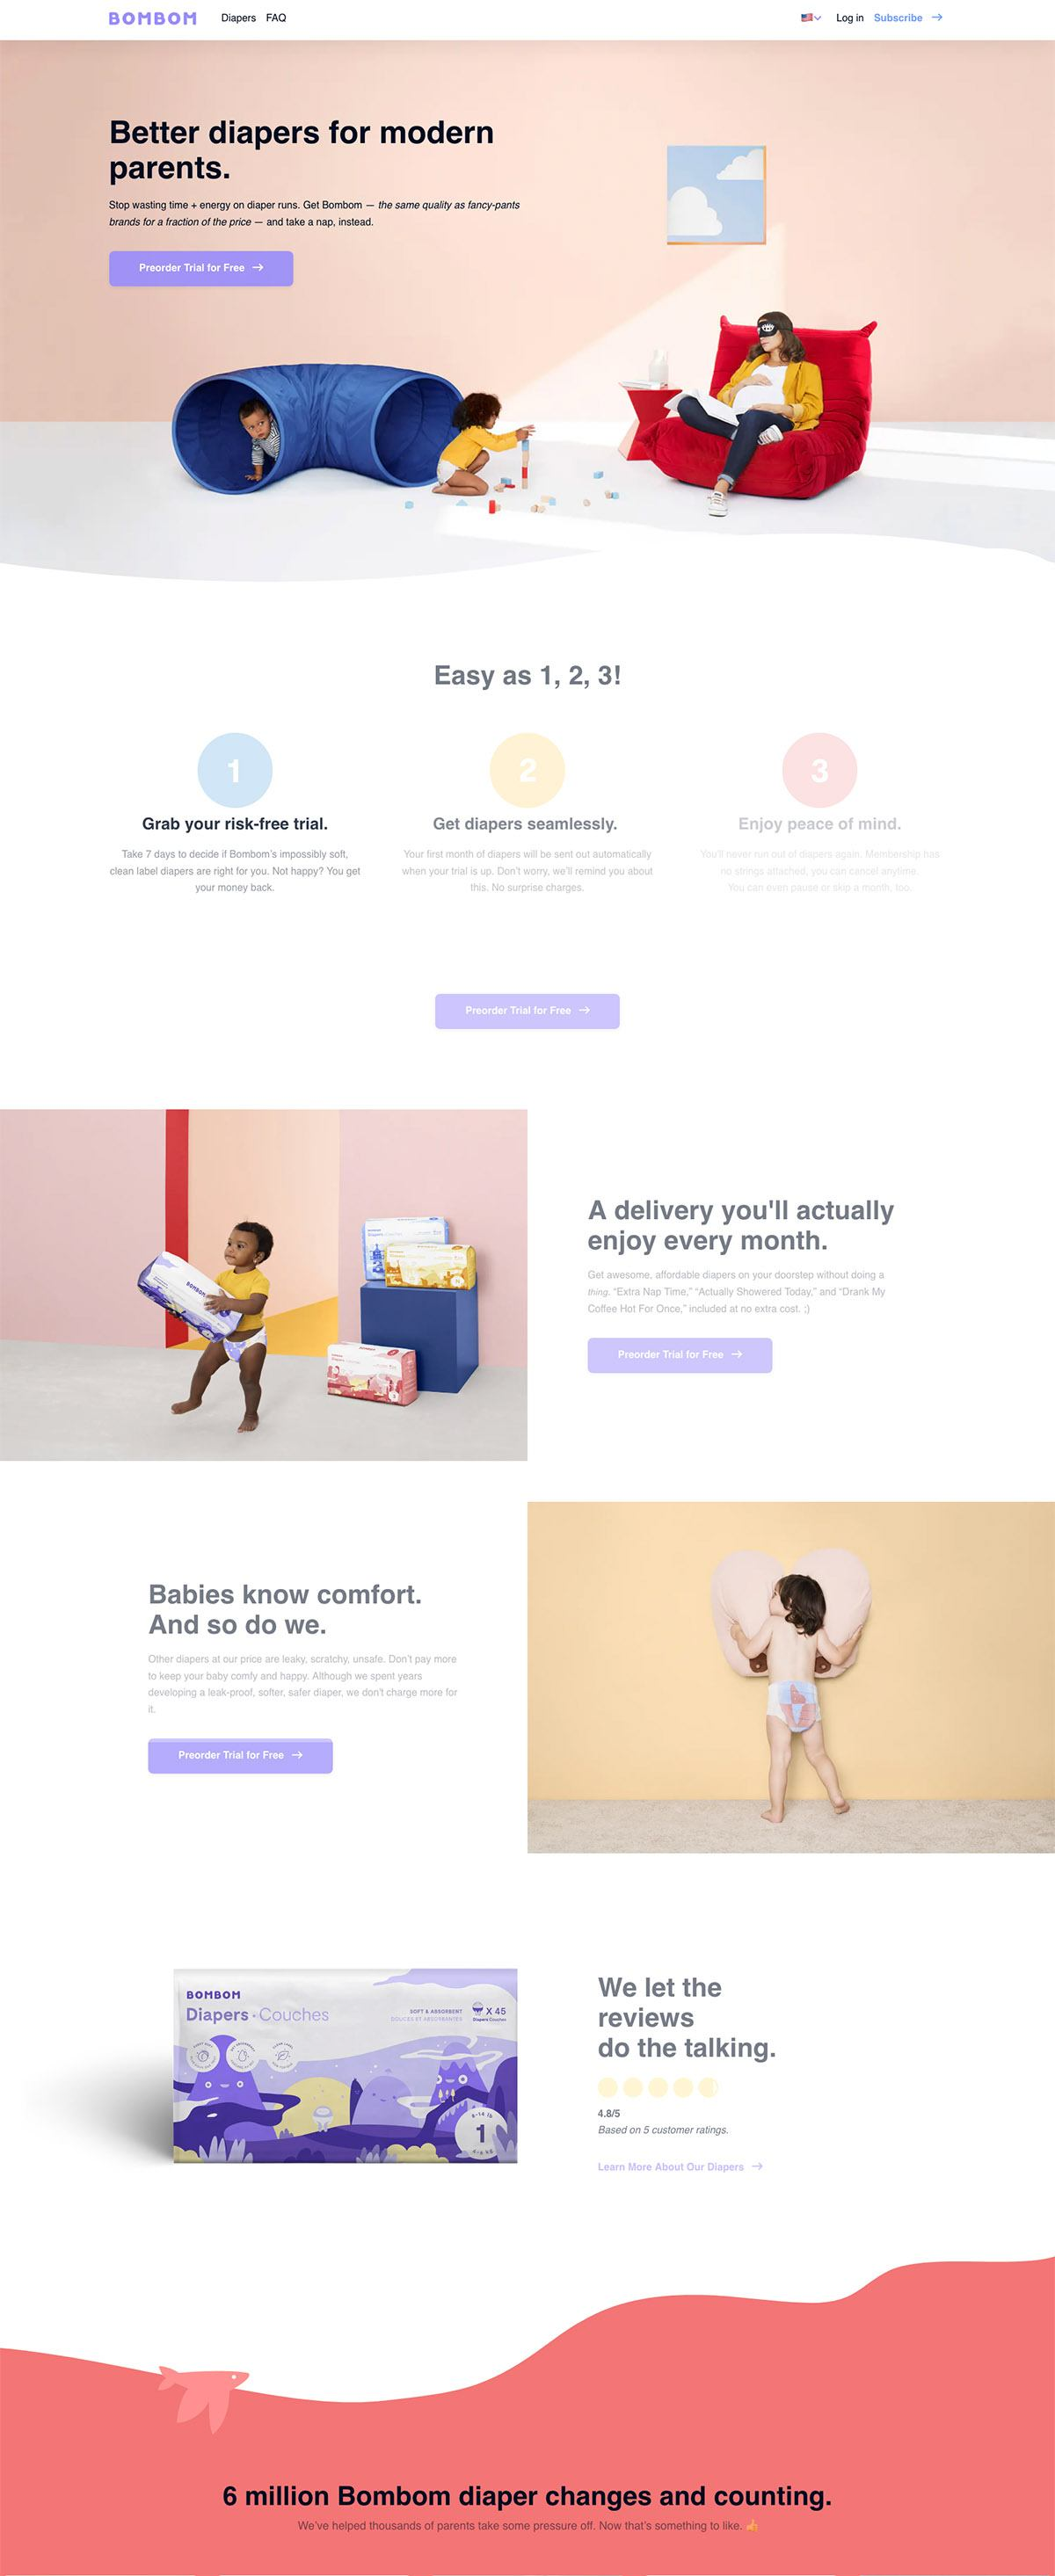 eCommerce website: Bombom